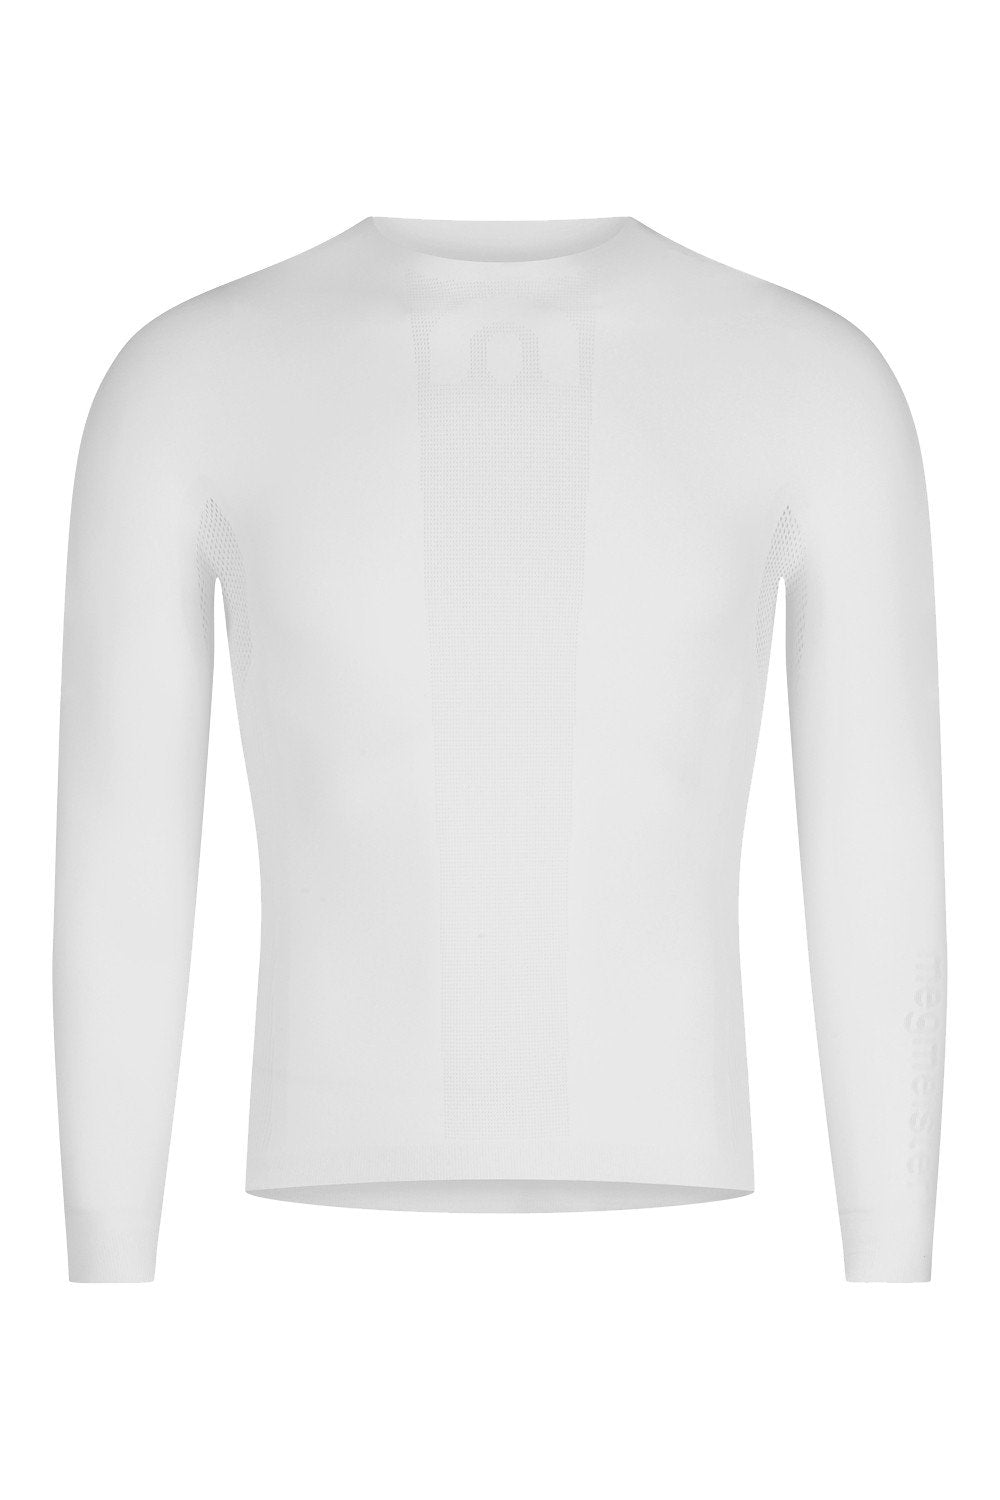 Men's DRYNAMO Cycle Long Sleeve Base Layer